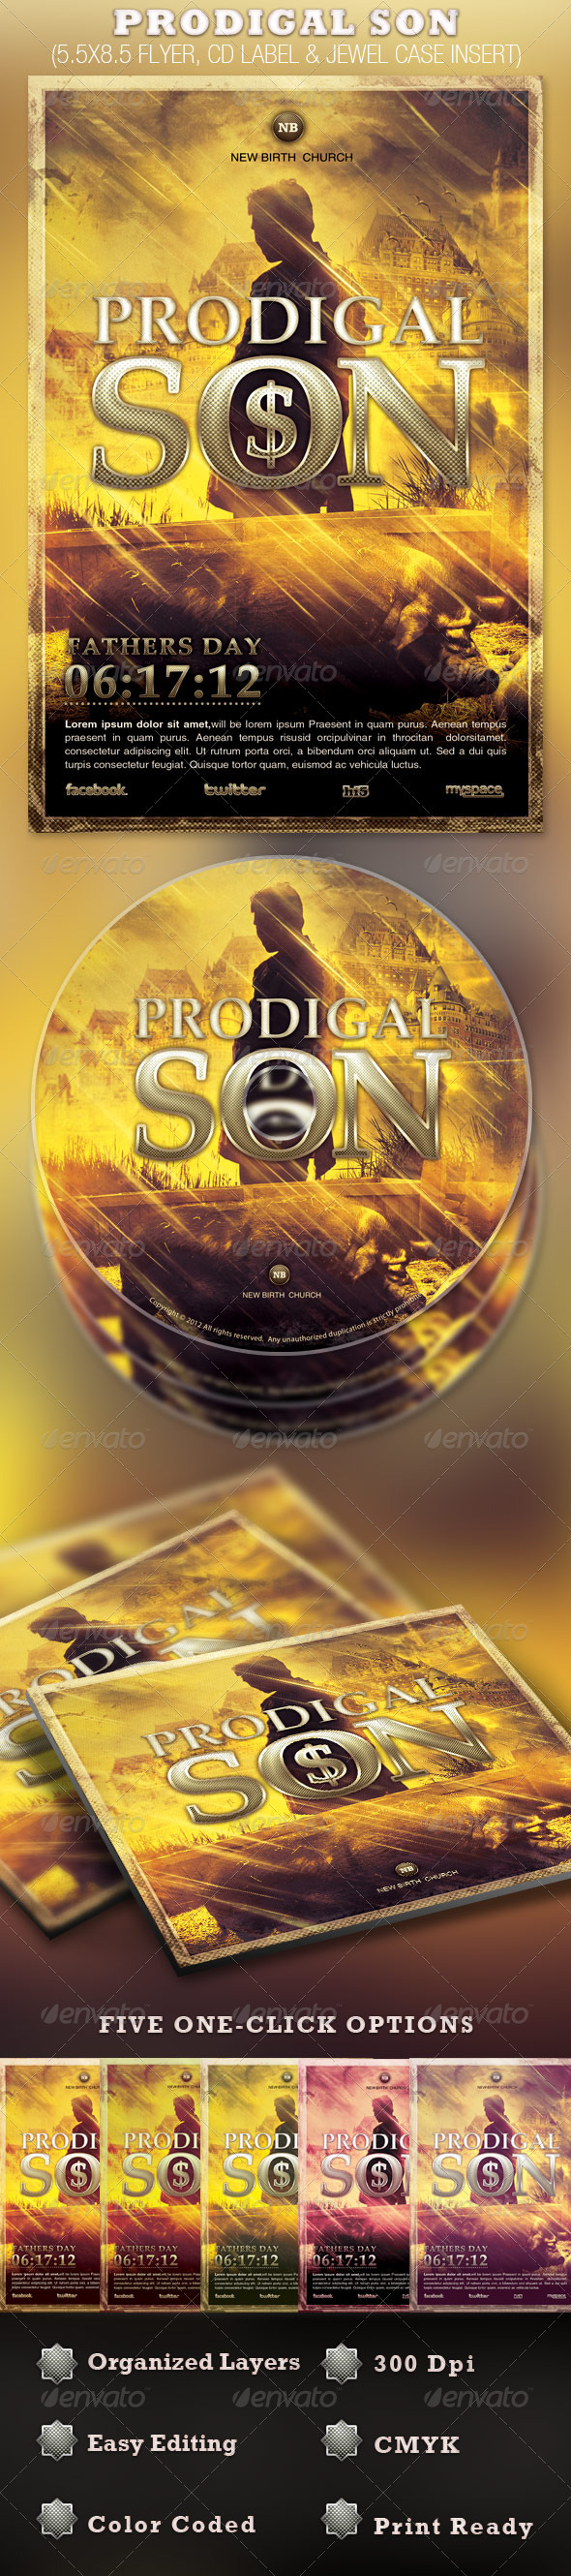 Prodigal Son Flyer and CD Template - Church Flyers